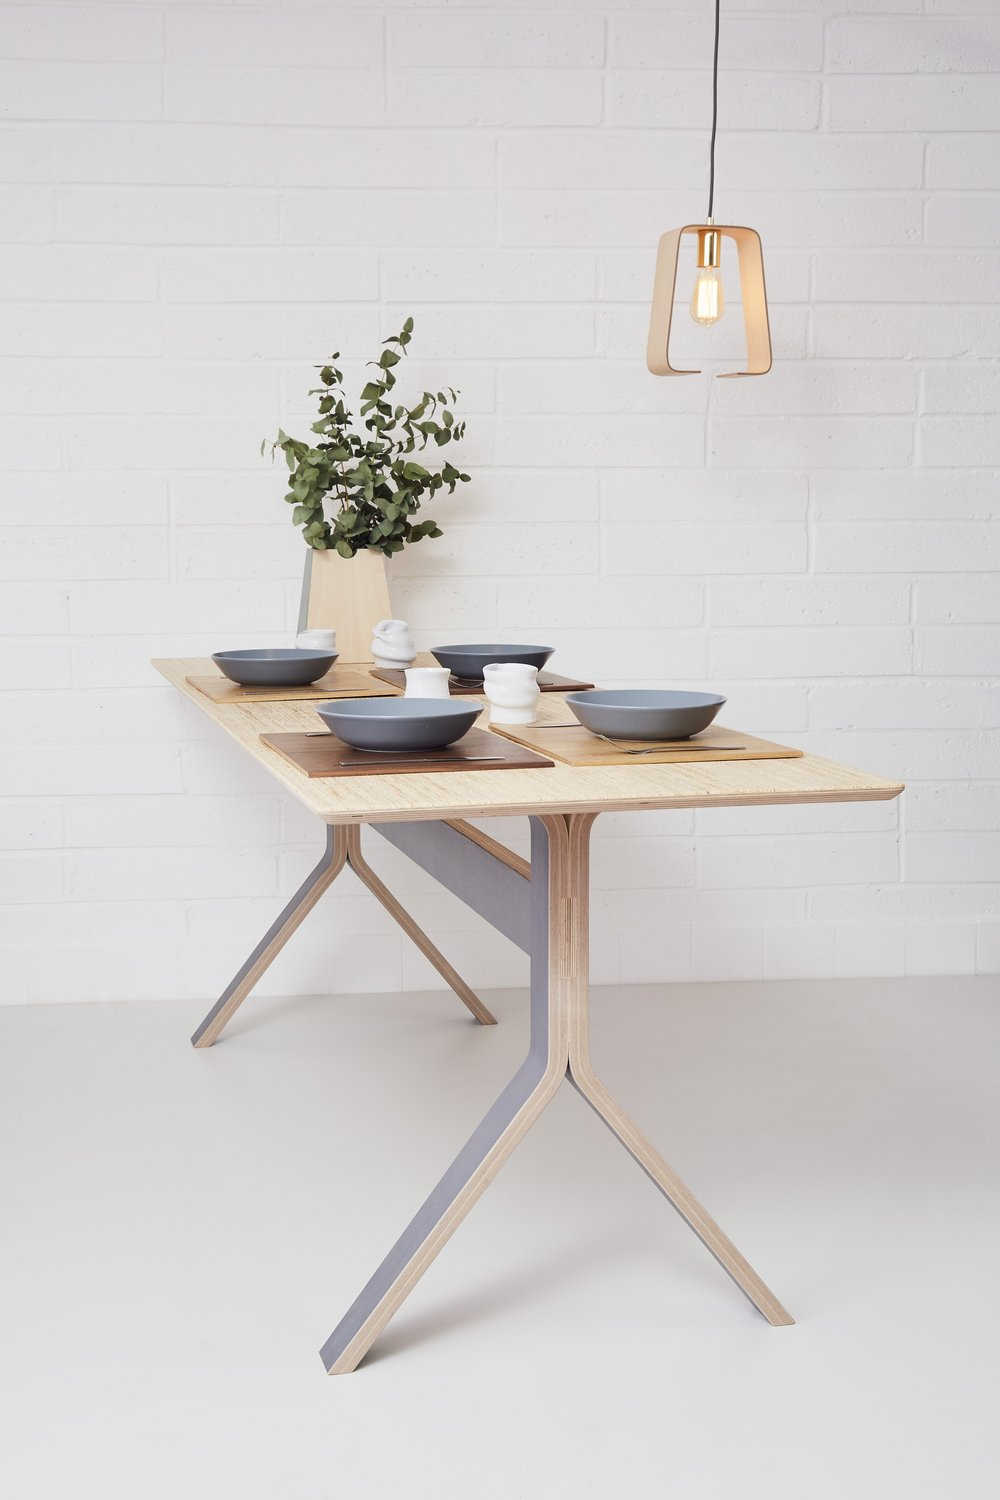 Lozi's minimal plywood Sea table, used as a dining table.